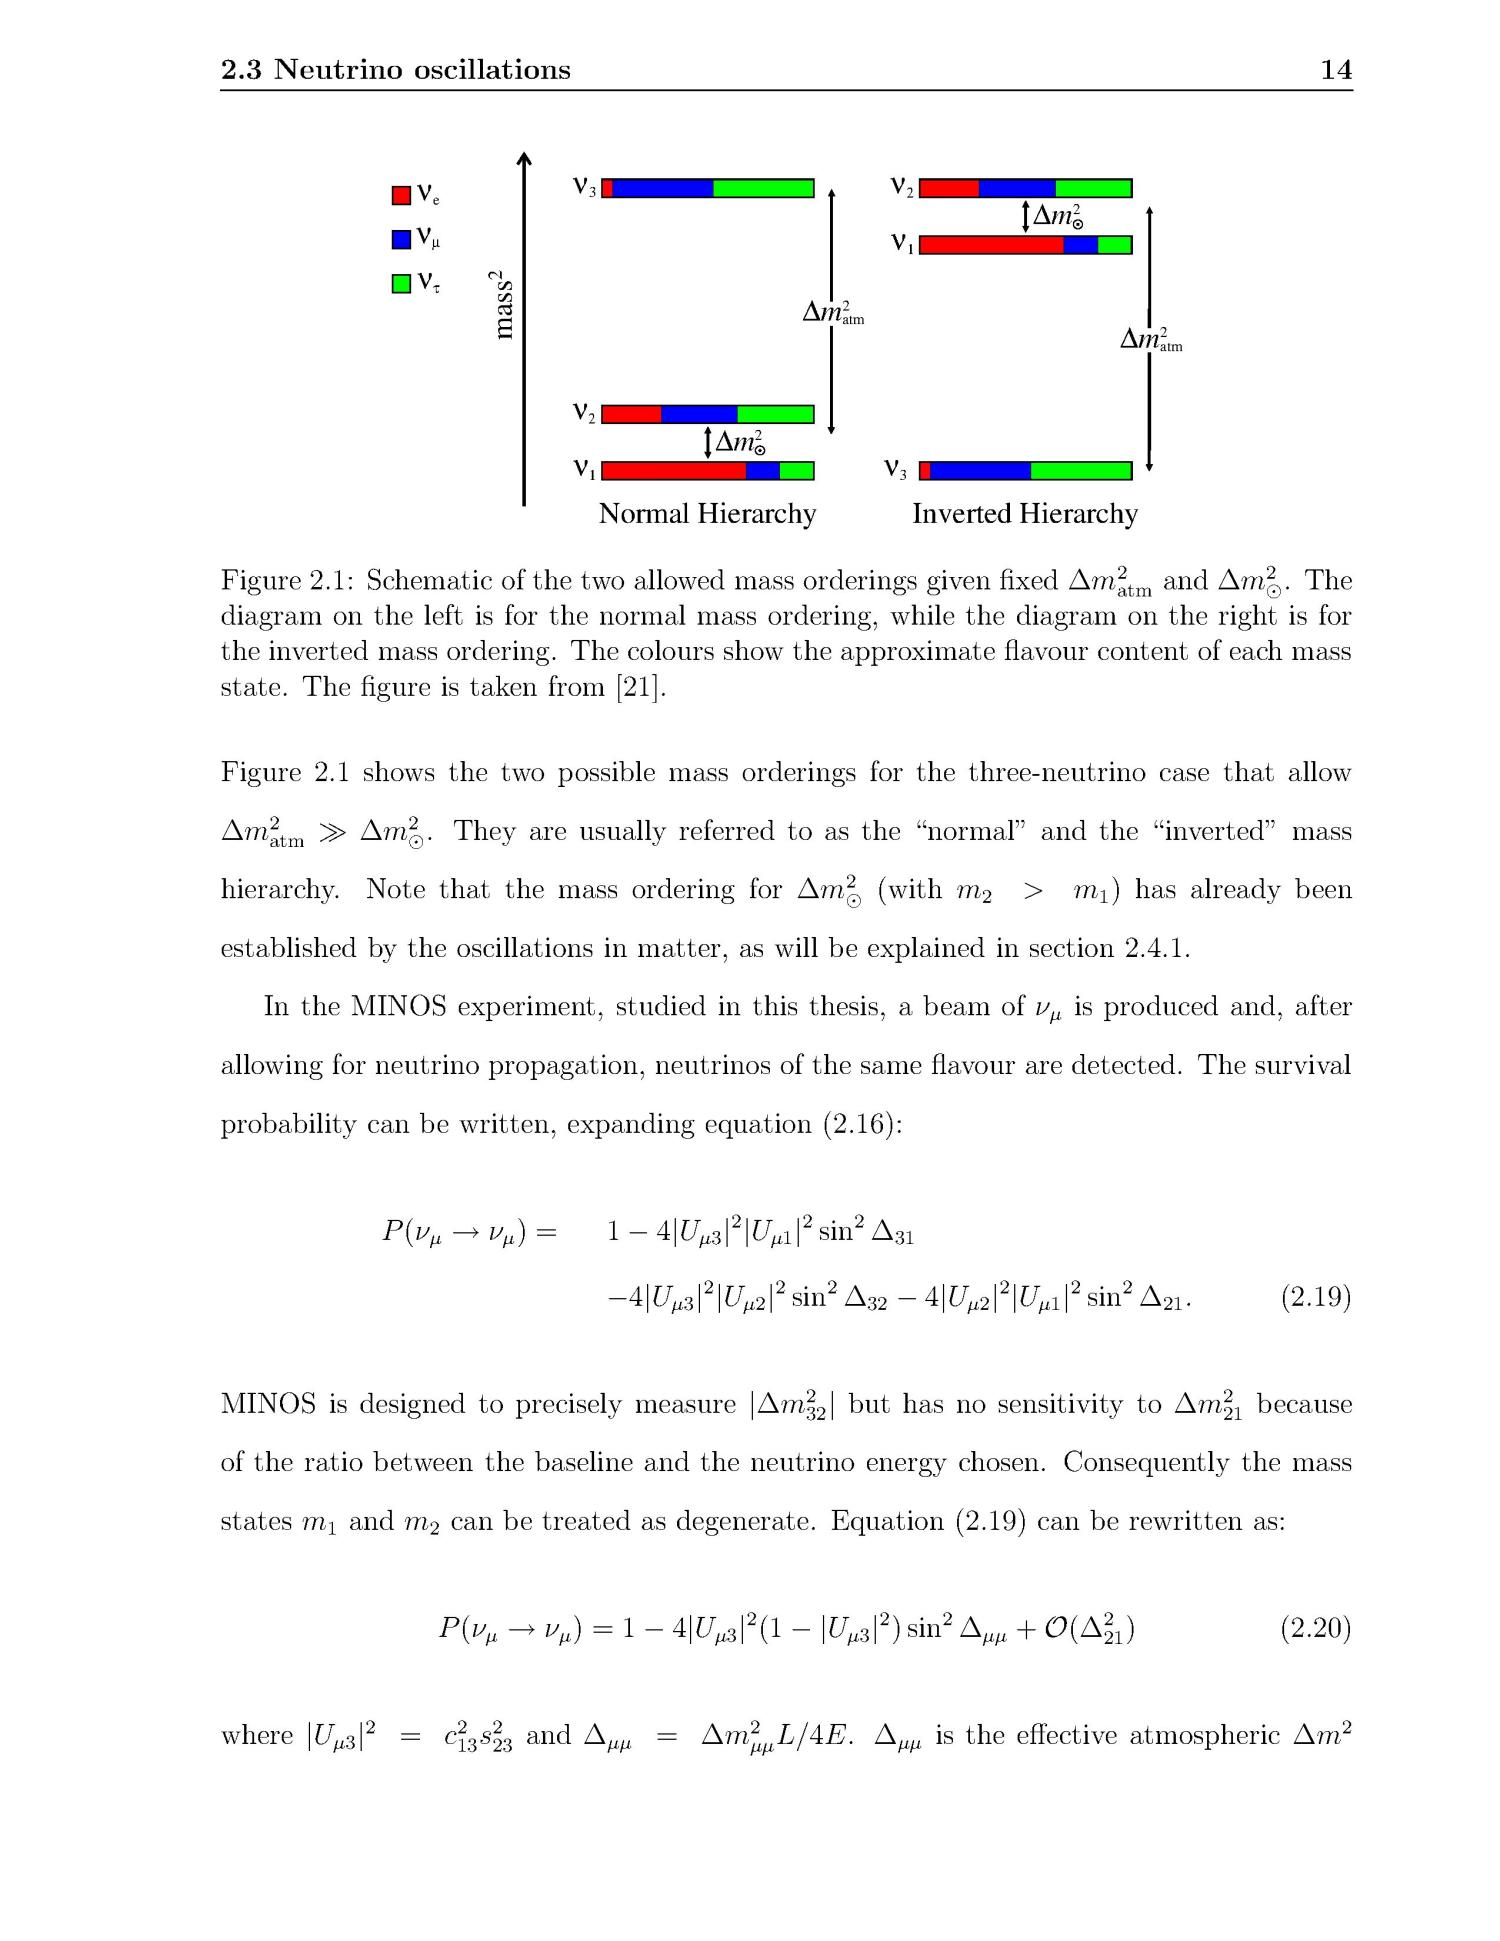 Sterile neutrino oscillations in MINOS and hadron production in pC collisions                                                                                                      [Sequence #]: 29 of 237